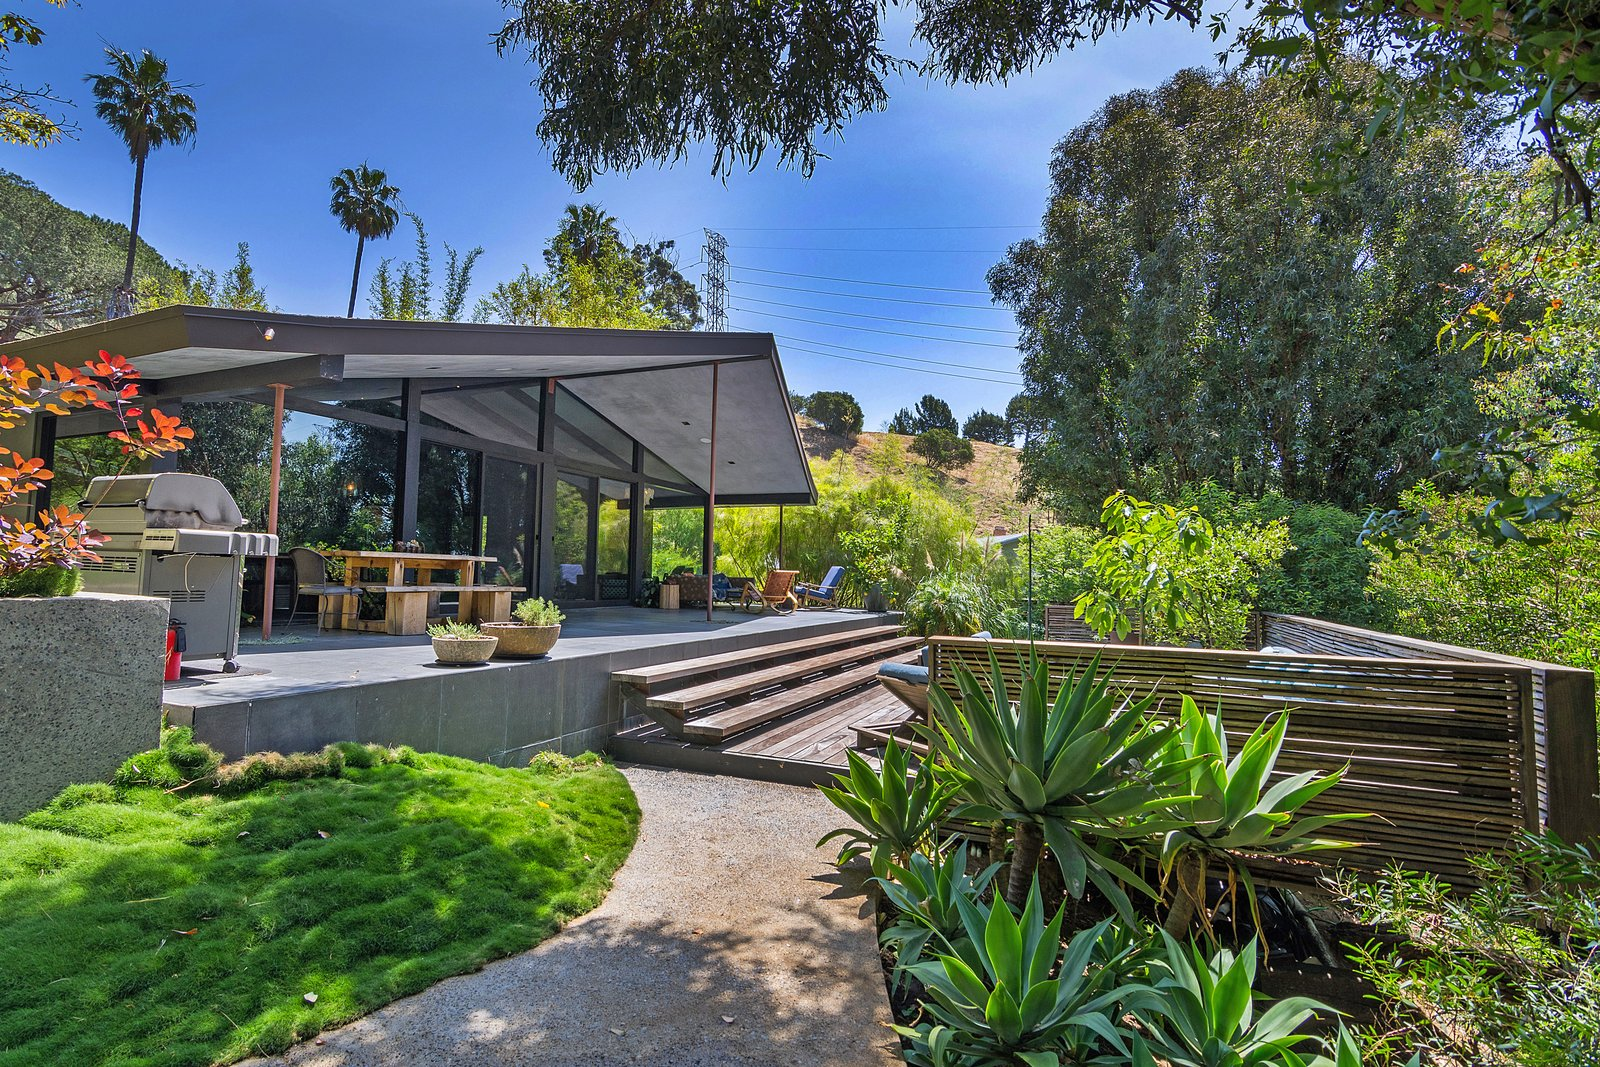 Tagged: Outdoor, Horizontal Fences, Wall, Wood Patio, Porch, Deck, Large Pools, Tubs, Shower, Back Yard, Grass, Trees, Concrete Patio, Porch, Deck, and Wood Fences, Wall.  Photo 1 of 14 in John Legend and Chrissy Teigen's Former Midcentury Home in the Hollywood Hills Is For Sale